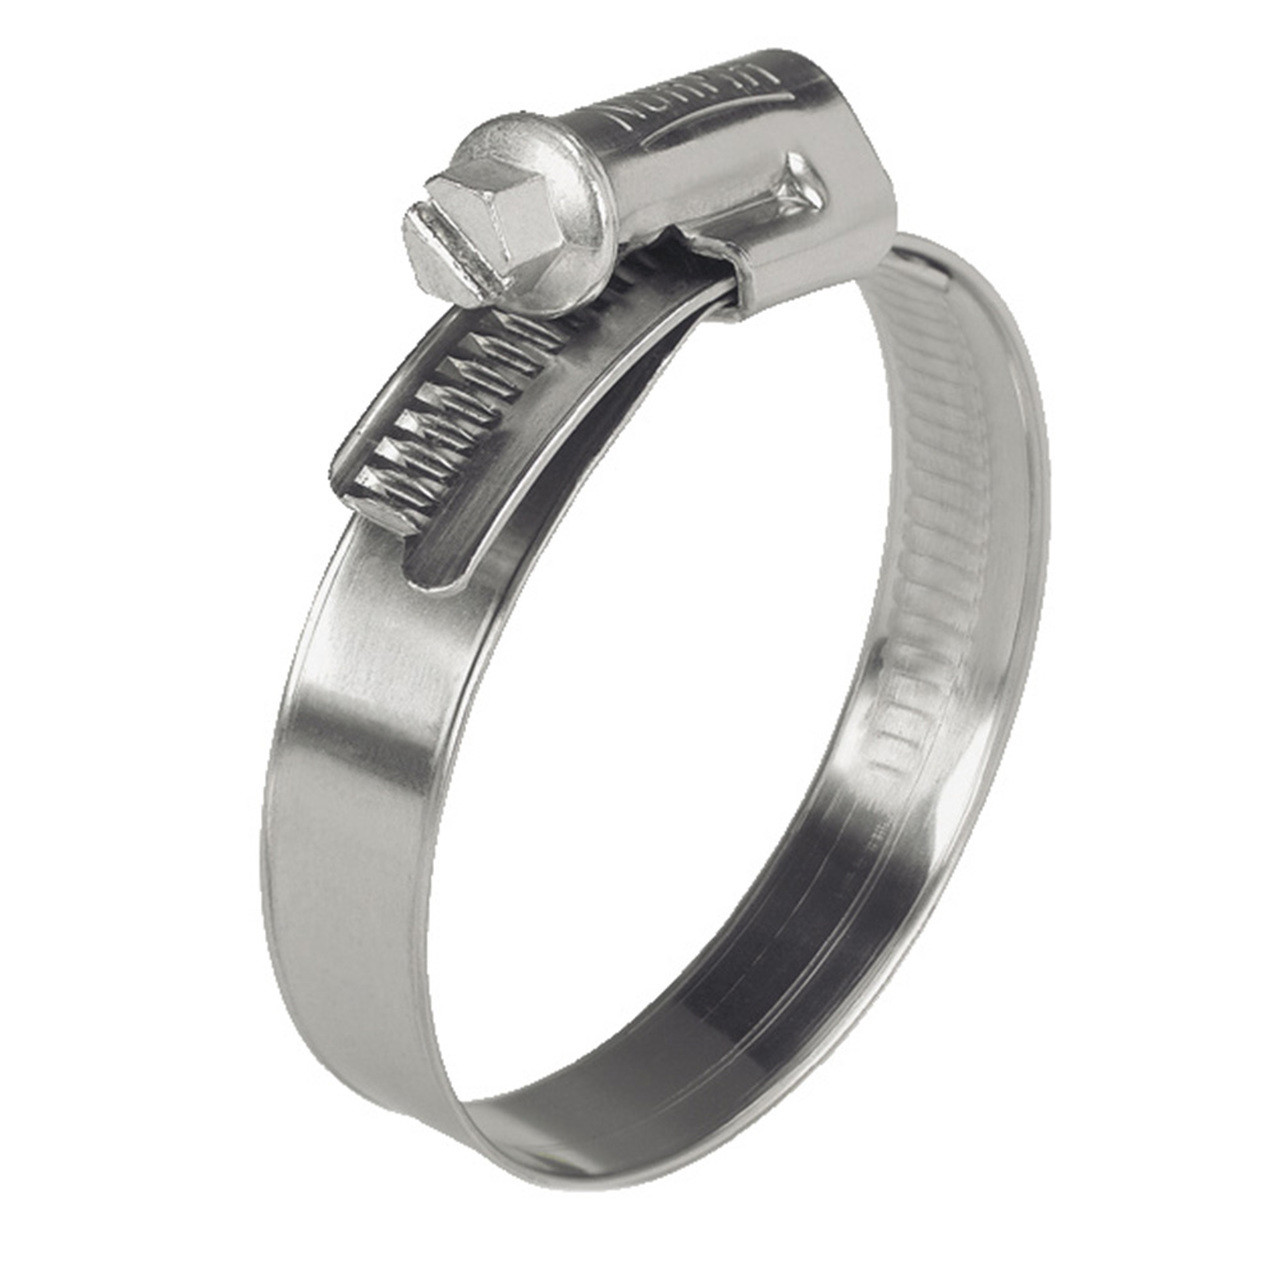 8 - 16mm Norma W4 All Stainless Steel Clamp - Worm Drive